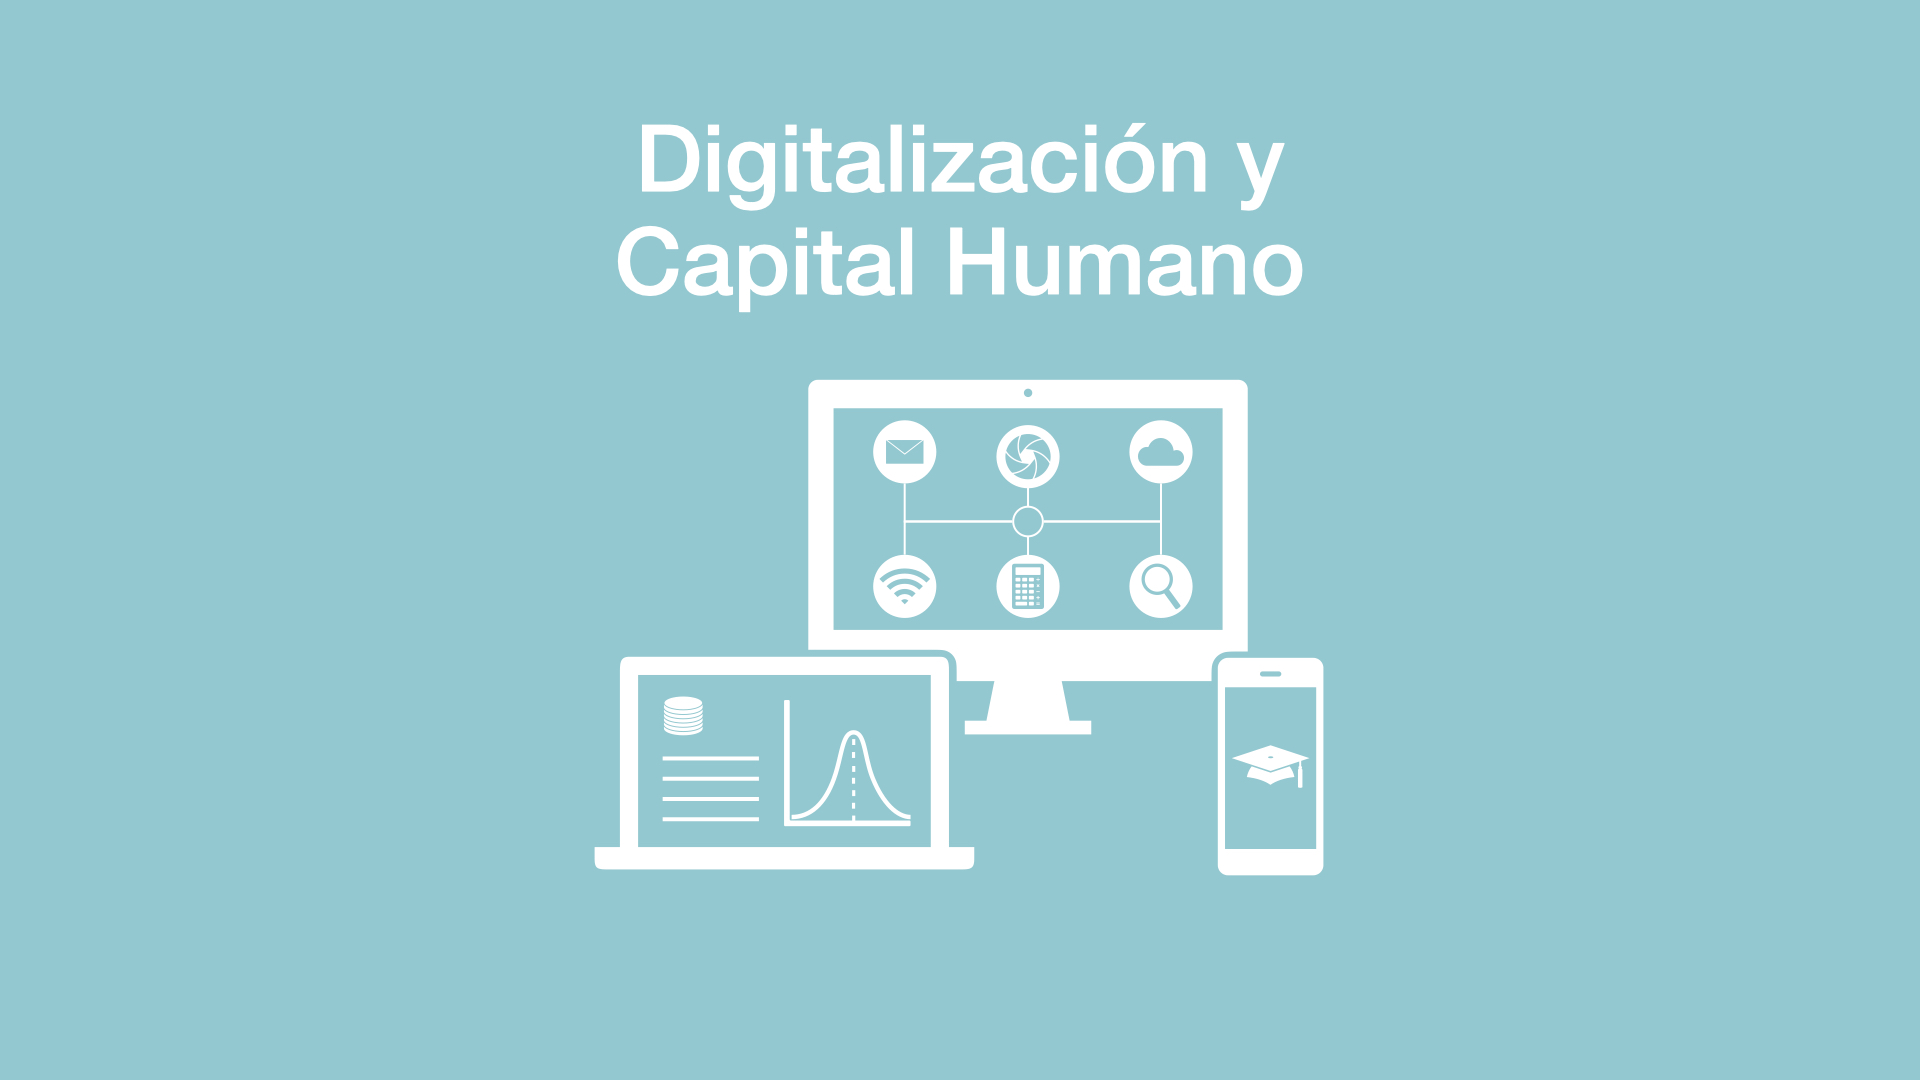 Digitalizacion y capital humano